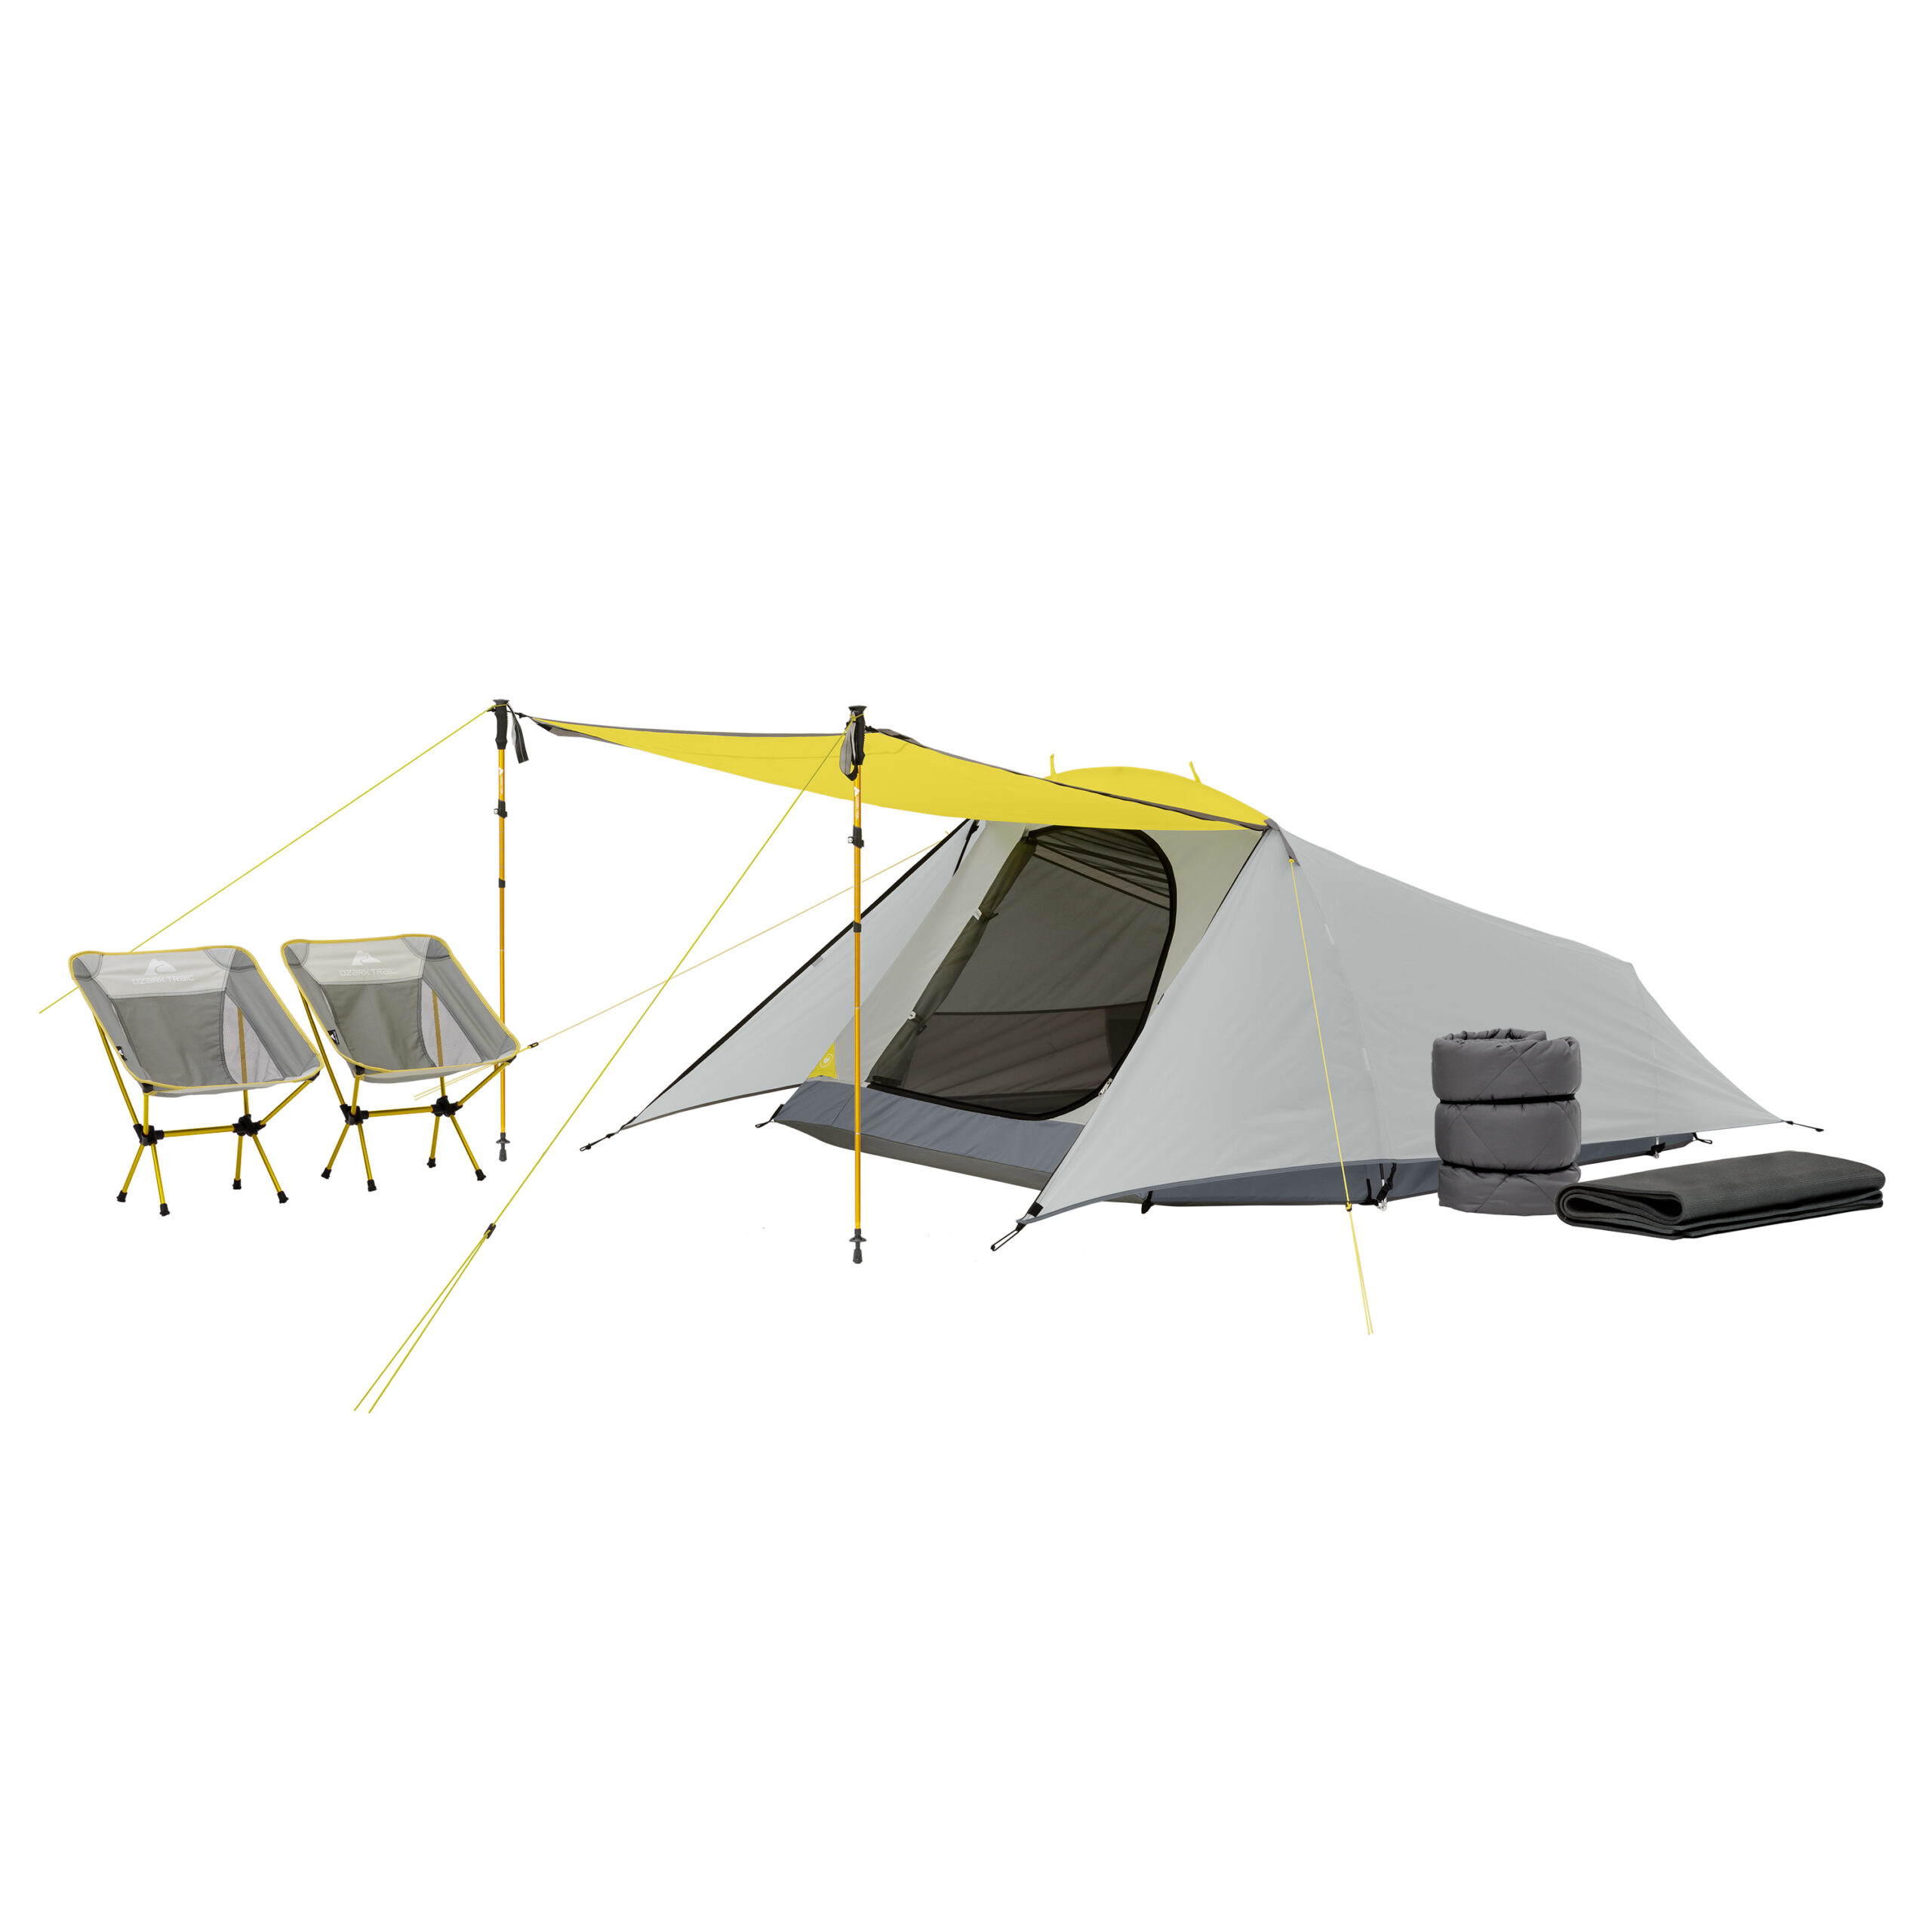 Ozark Trail 3-Person 16pc Camping Combo, Dome Tent with Rainfly, Trekking poles, Sleeping Bag, Sleeping Pad and Low-Back Chairs (Walmart)